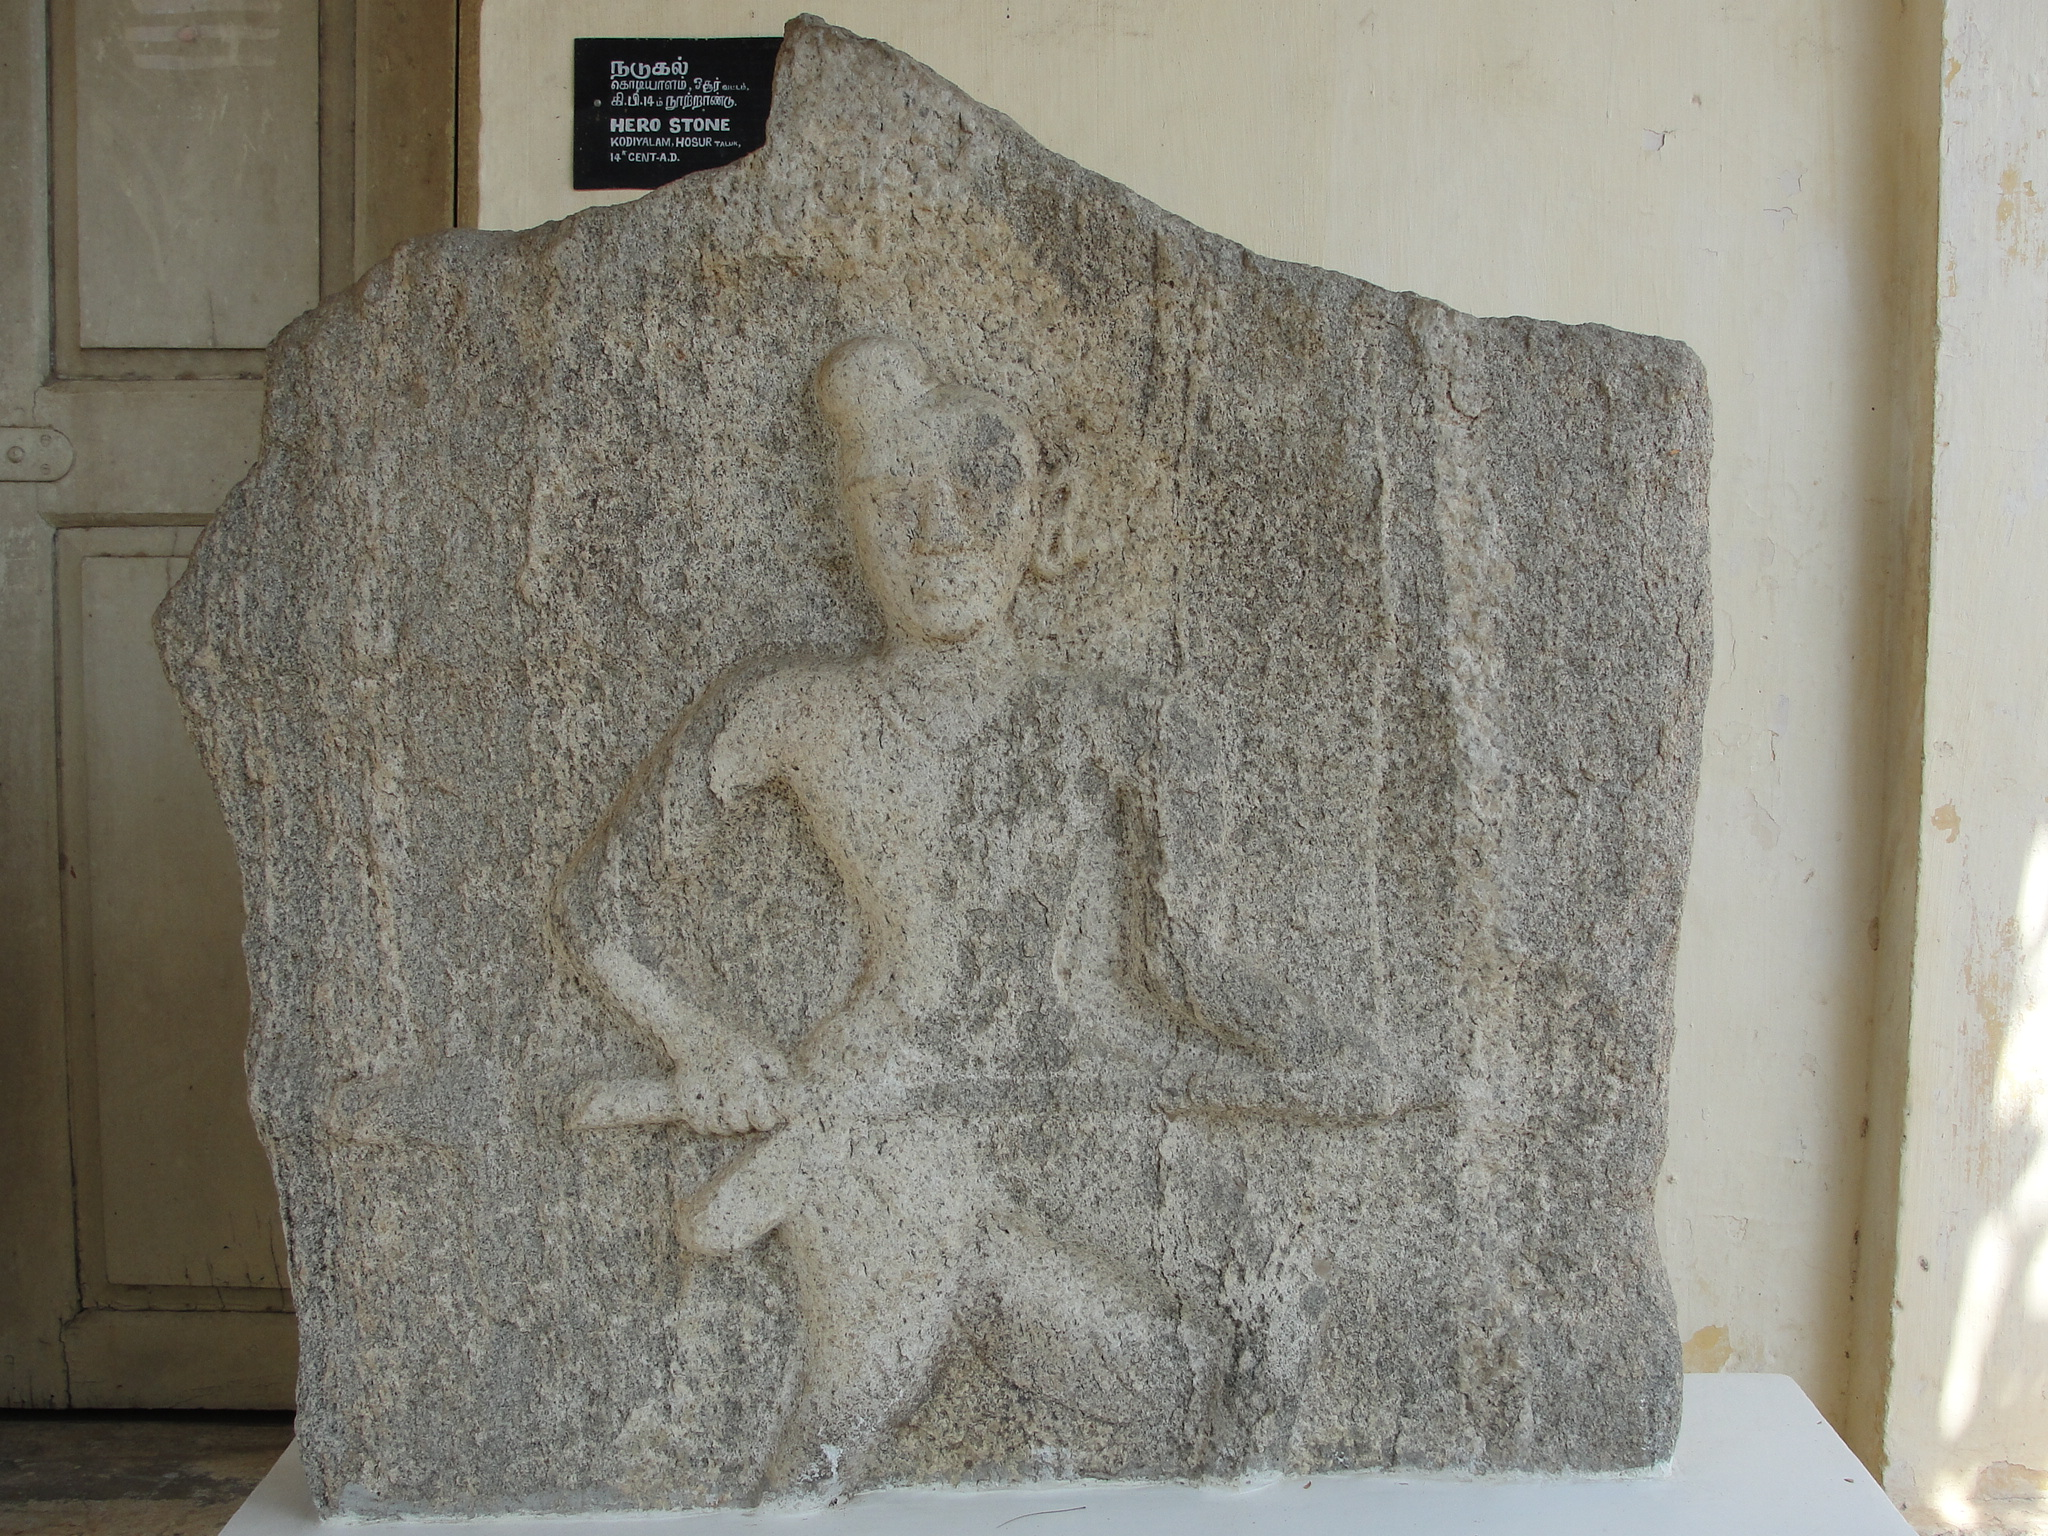 http://upload.wikimedia.org/wikipedia/commons/f/f3/14th_century,_A.D.,Hero_Stone,Kodiyalam,Hosur_Taluk.JPG